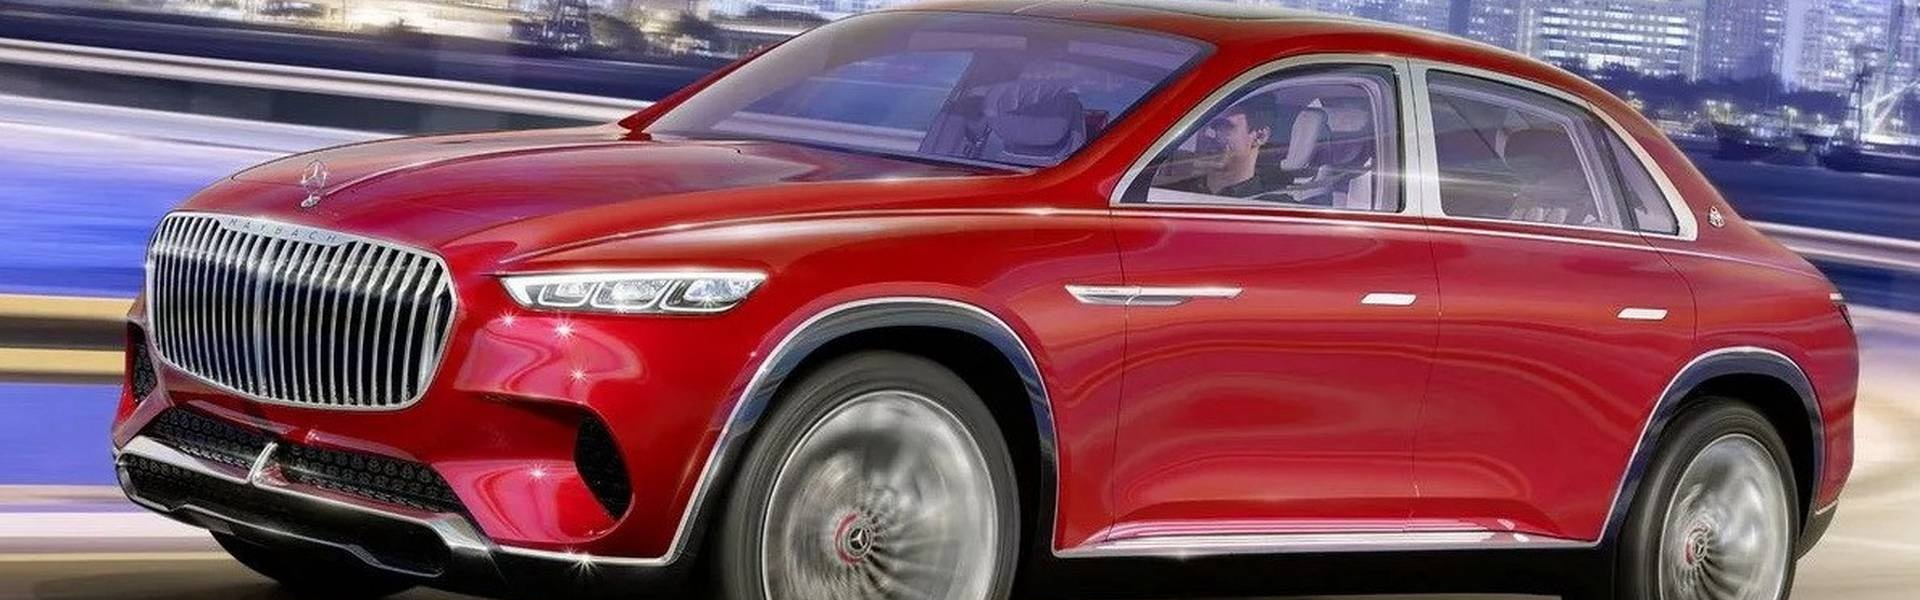 vision-mercedes-maybach-ultimate-luxury-leaked-official-image (1).jpg